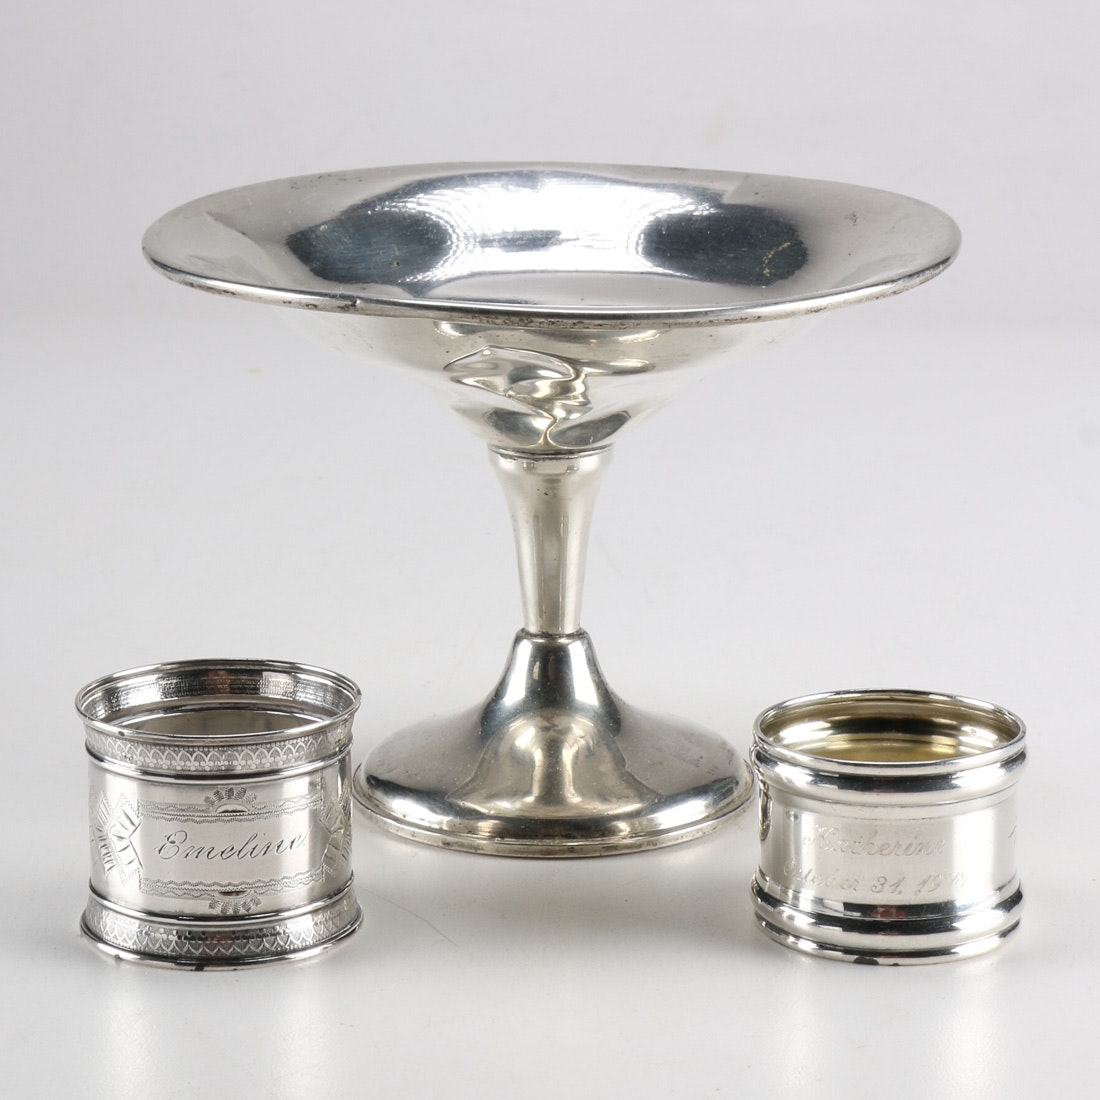 Vintage Sterling Napkin Holders and Compote